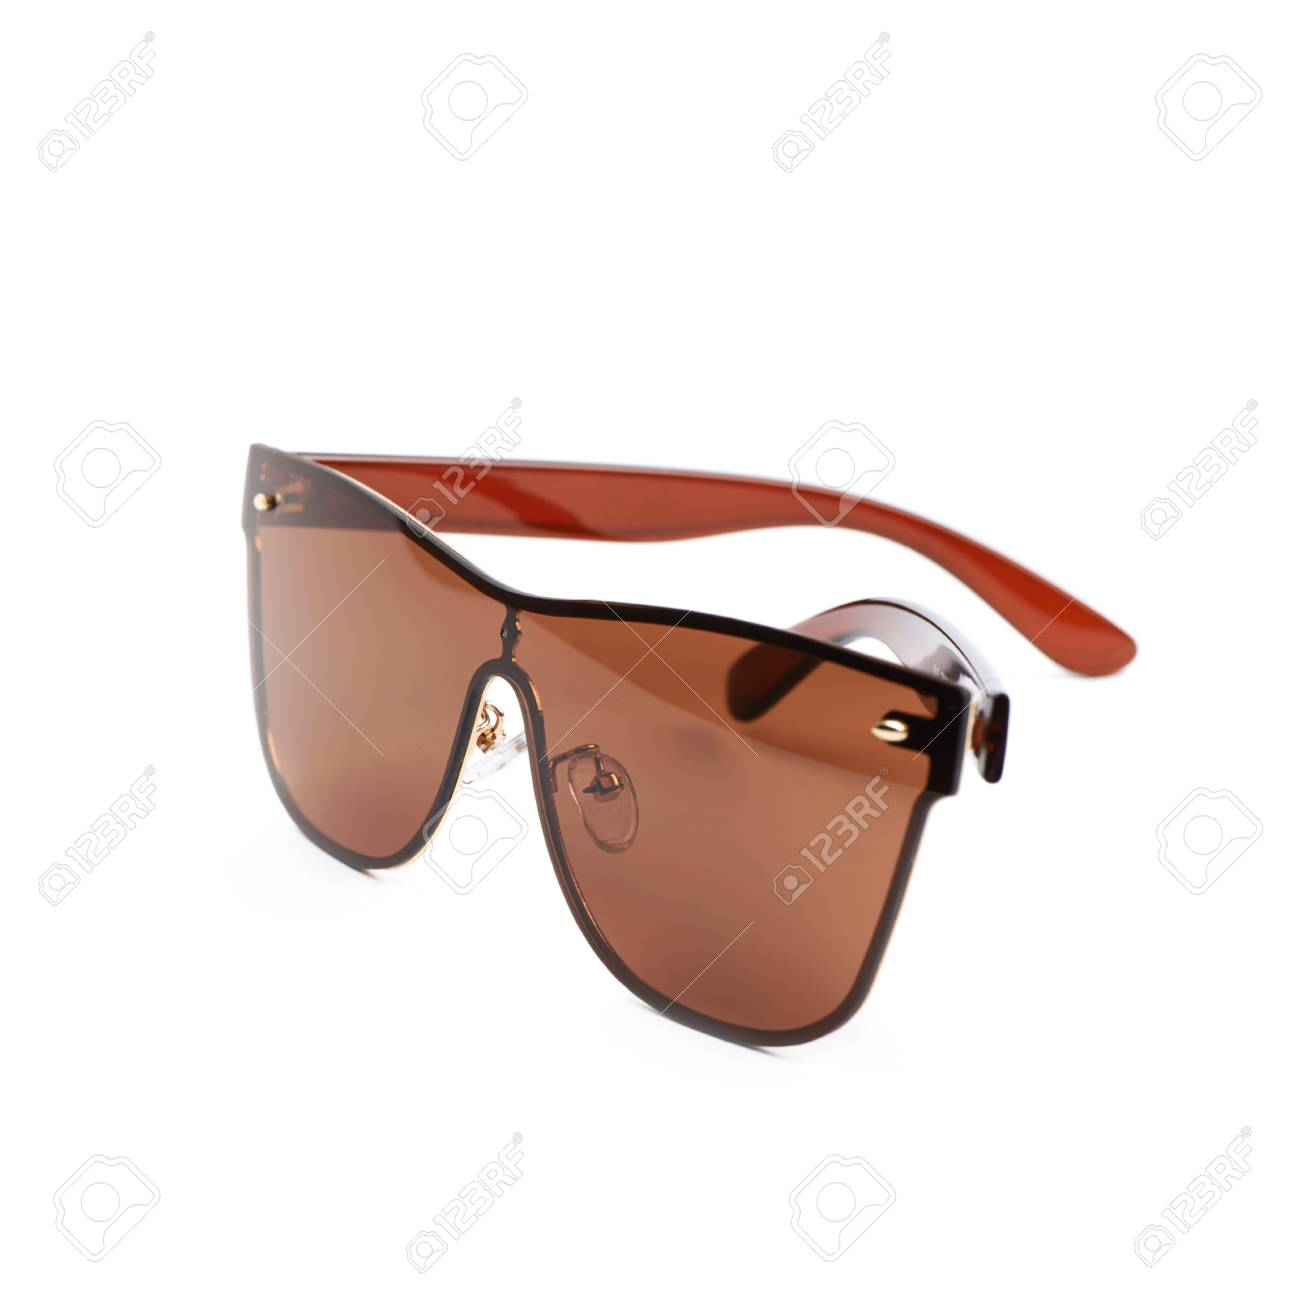 9540cb9a88b Pair of brown shade sunglasses isolated over the white background Stock  Photo - 60707507